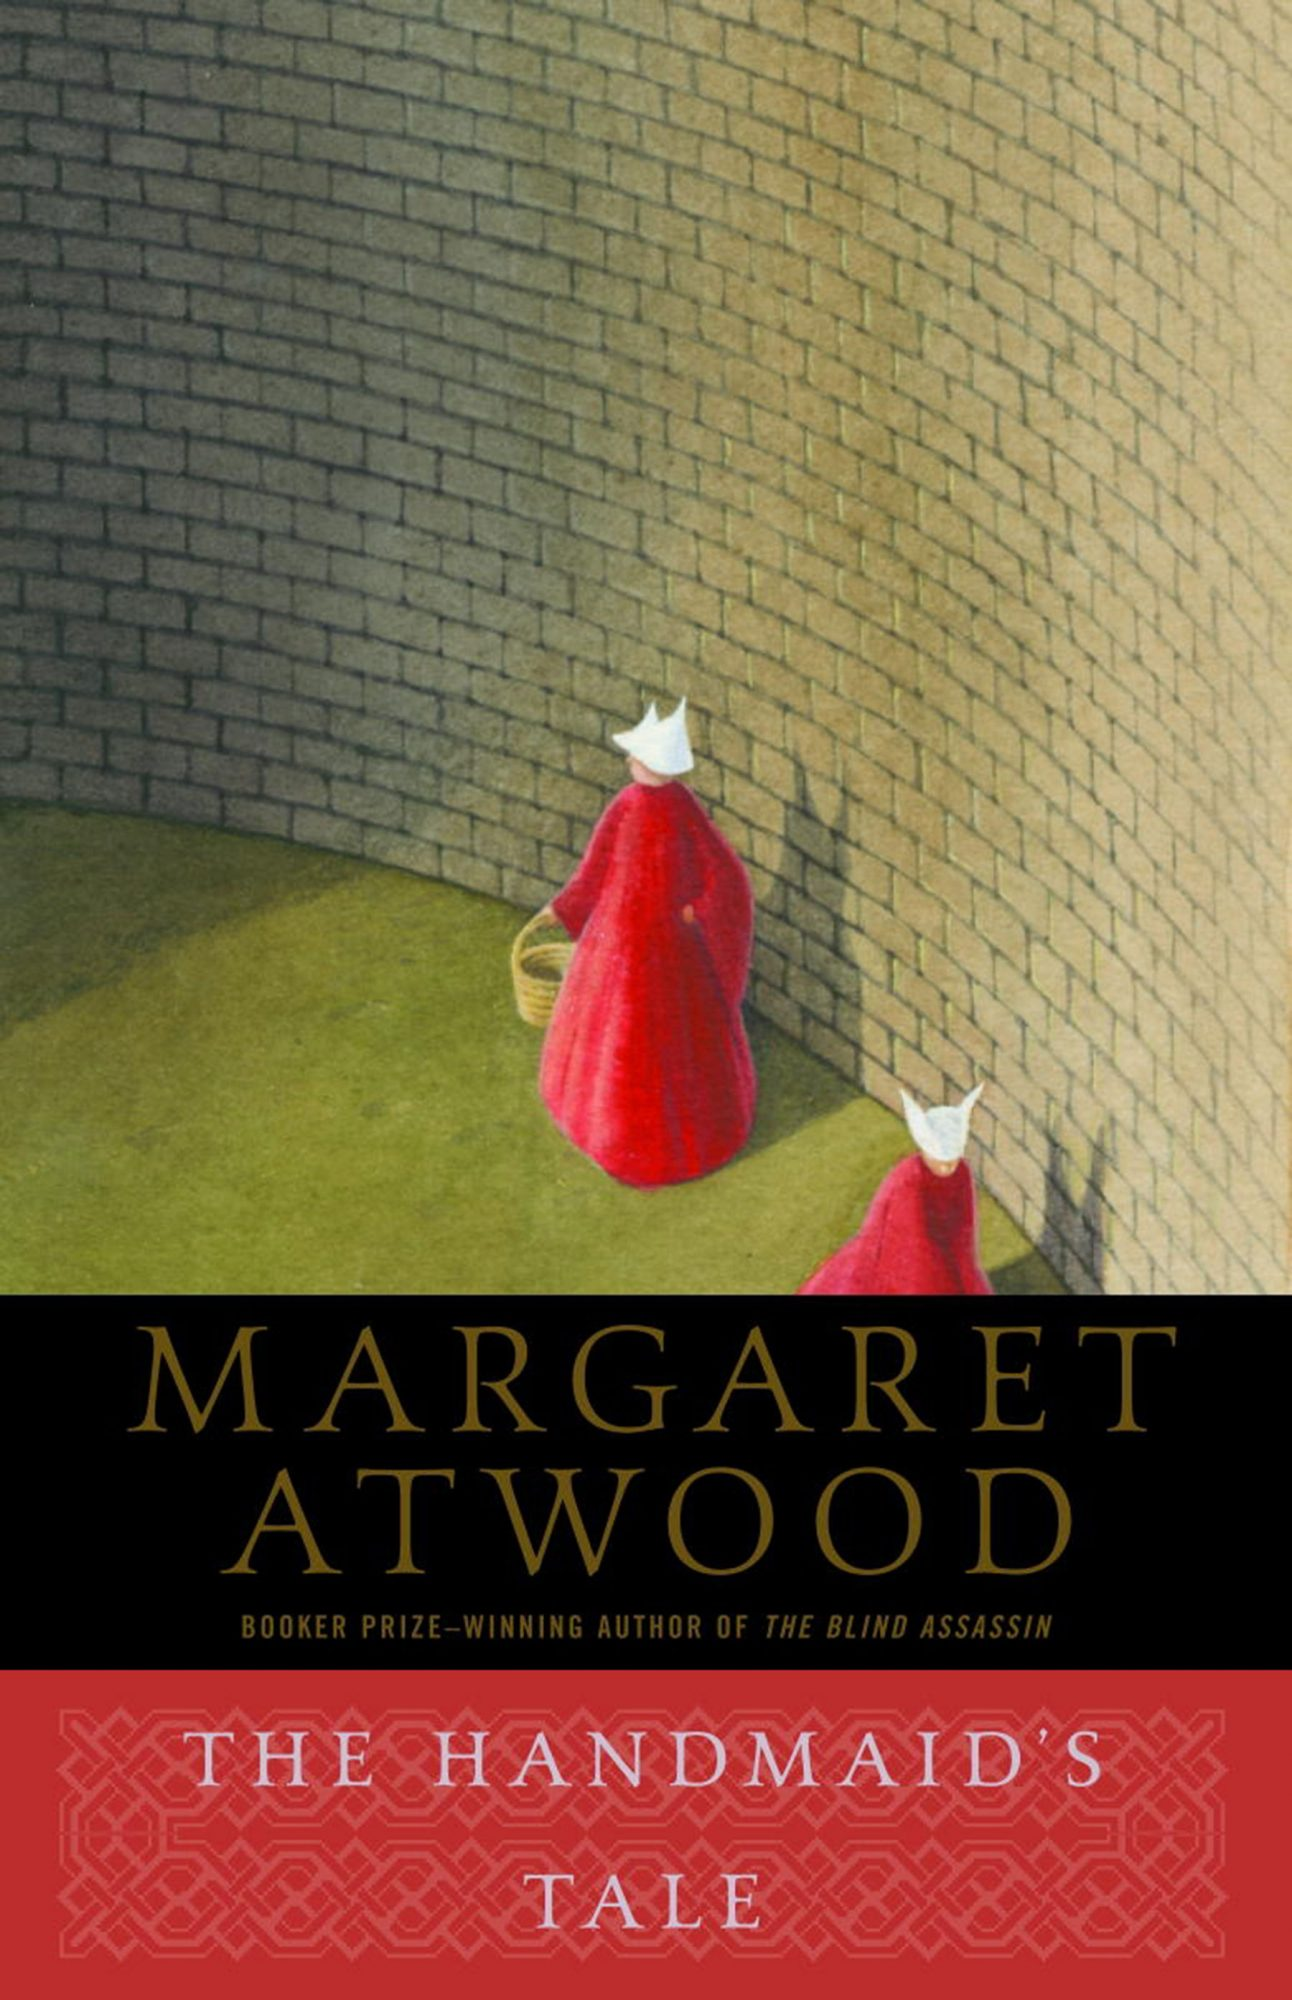 The Handmaid's Tale - paperback (3/16/1998)by Margaret Atwood